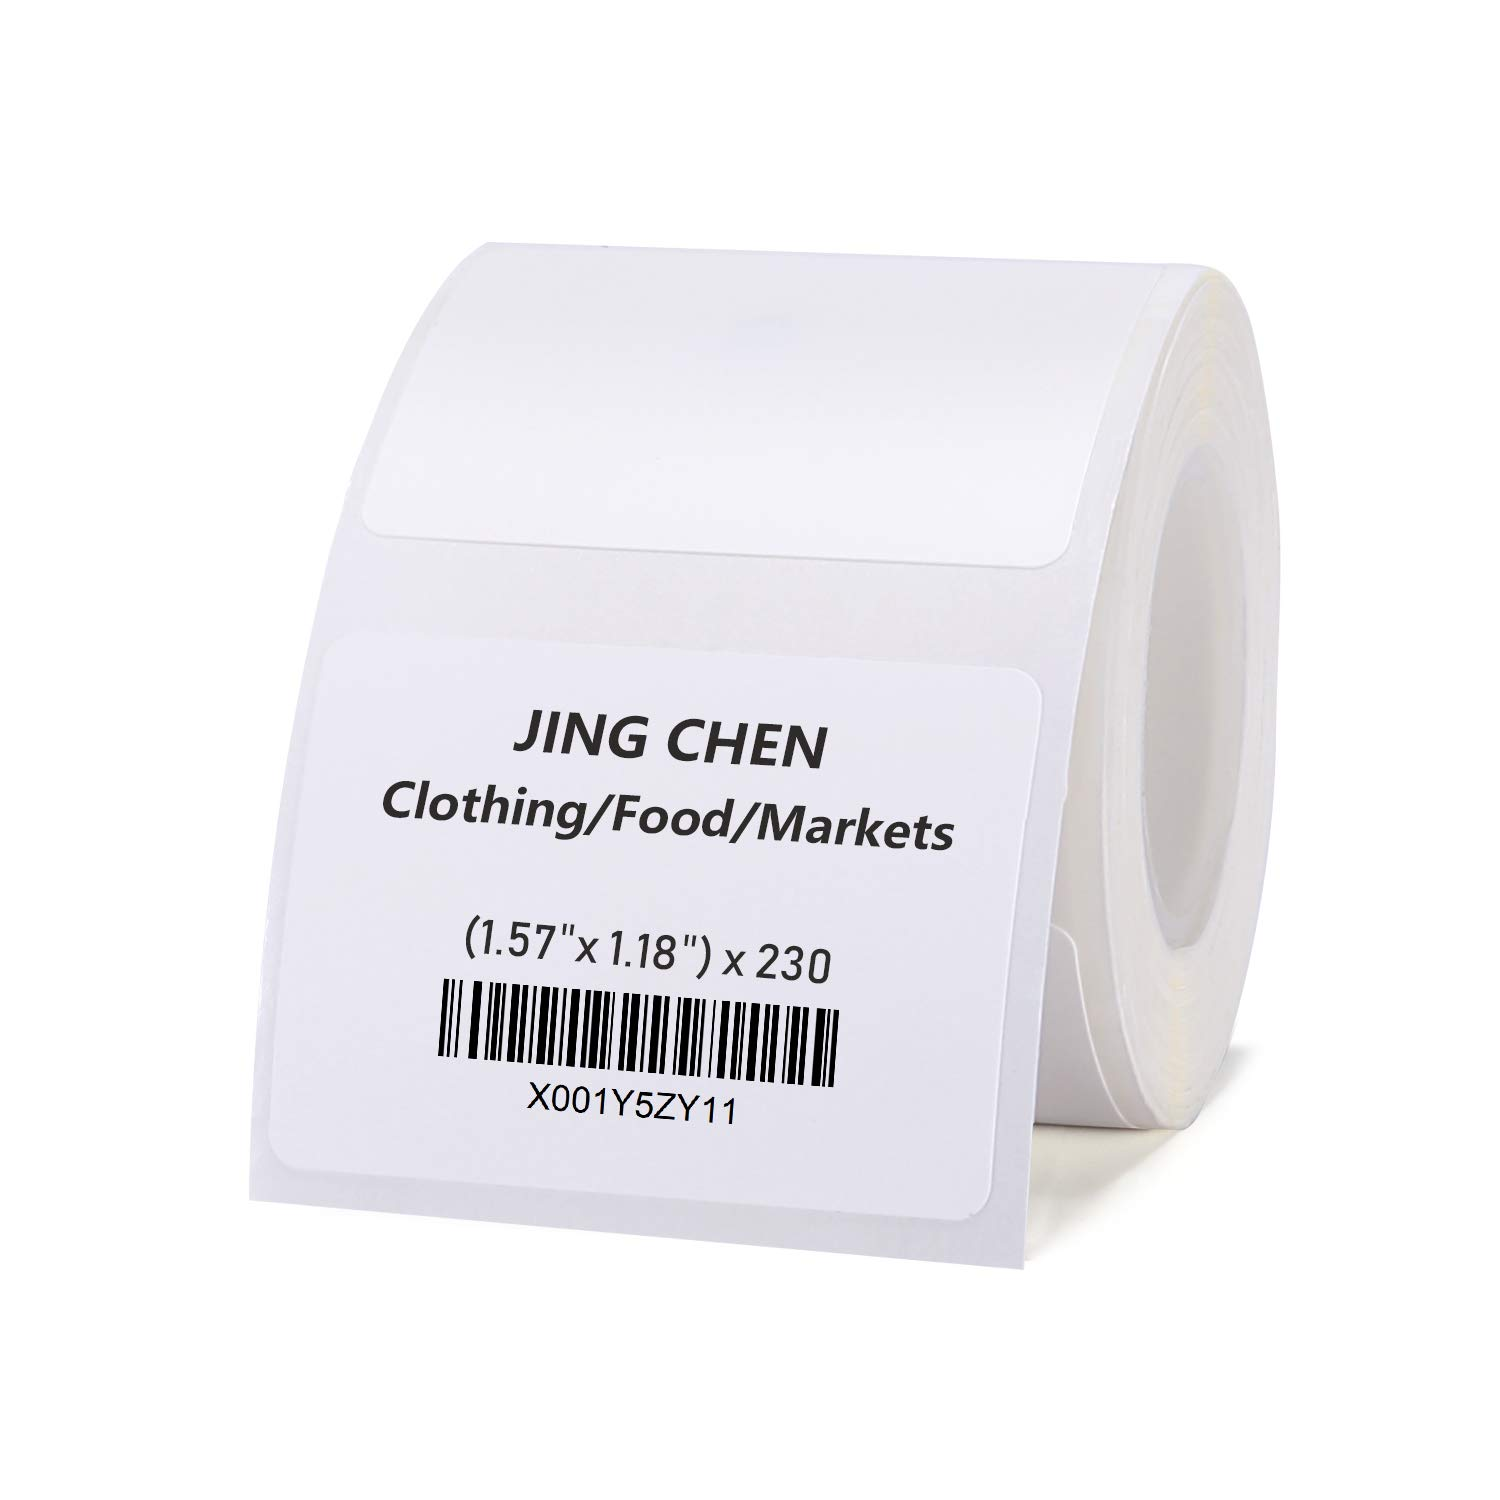 """JINGCHEN Thermal Label Paper, Print with B11/B3, Widely Used in Inventory/Food/Supermarkets/Clothing & Shoes & Hats, Label Printing, 1.57""""x1.18"""", 230 Labels/Roll by JINGCHEN (Image #1)"""